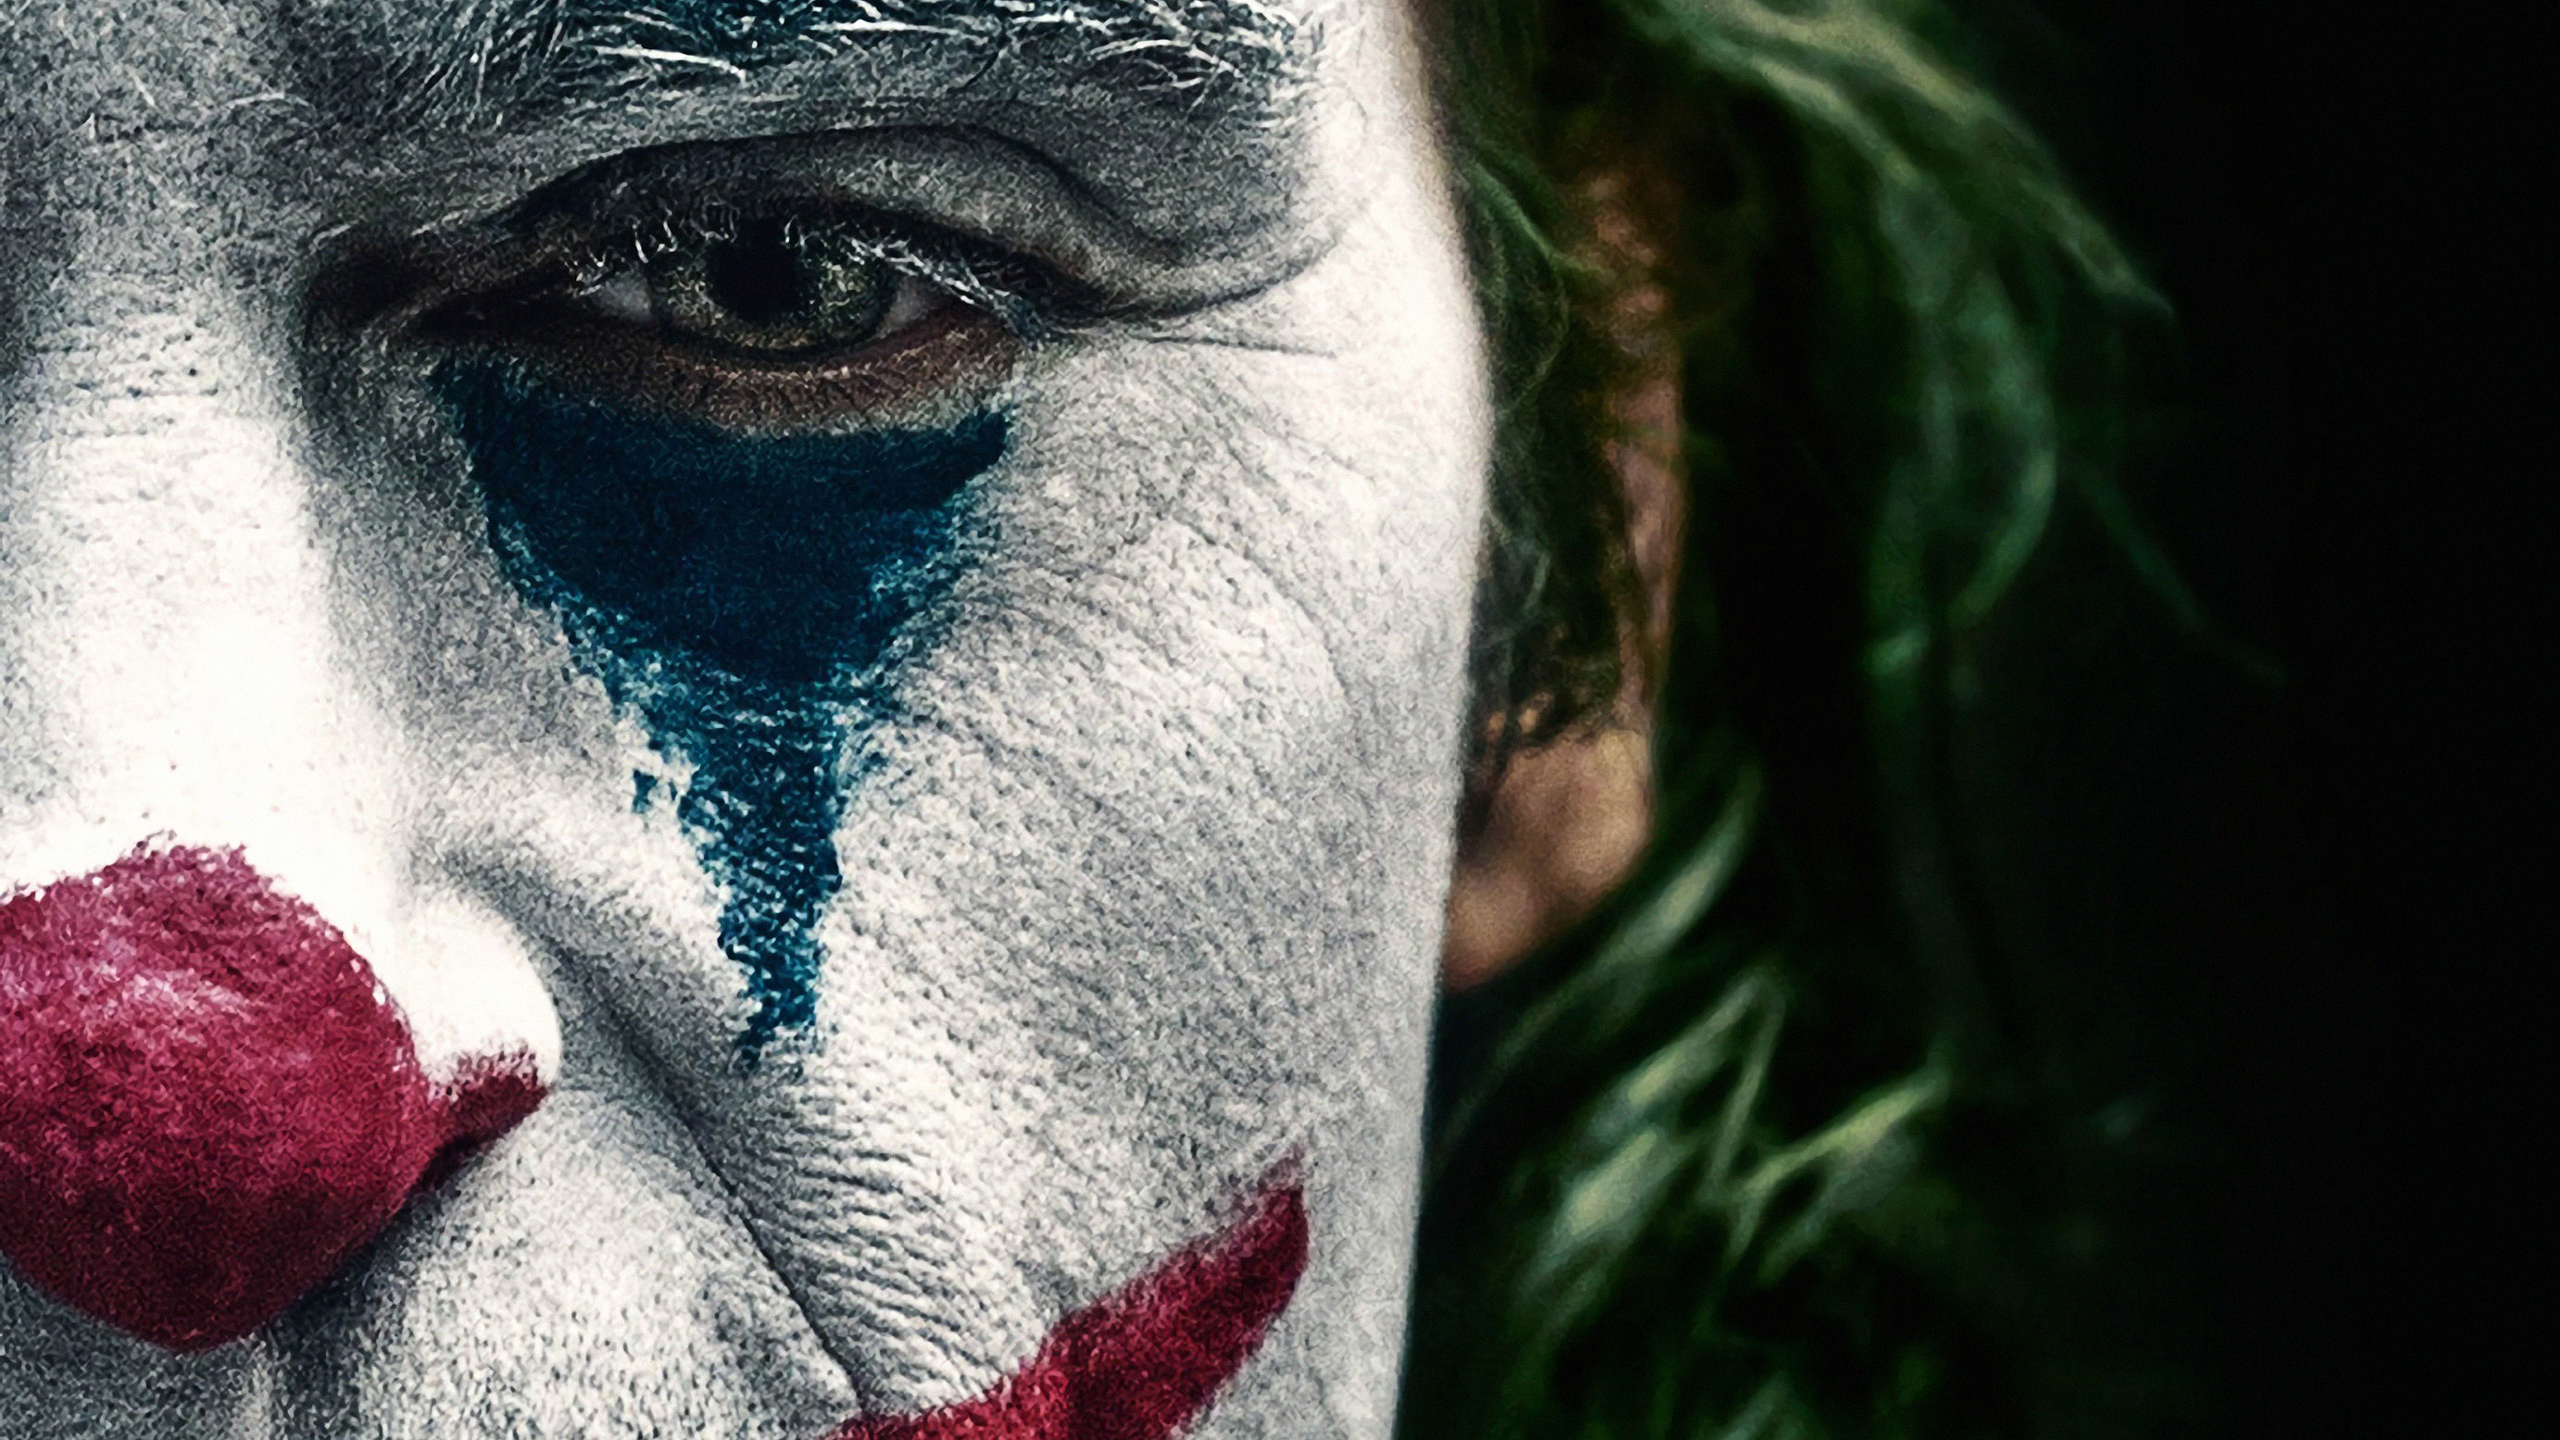 Joker 2019 Movie Hd Movies 4k Wallpapers Images